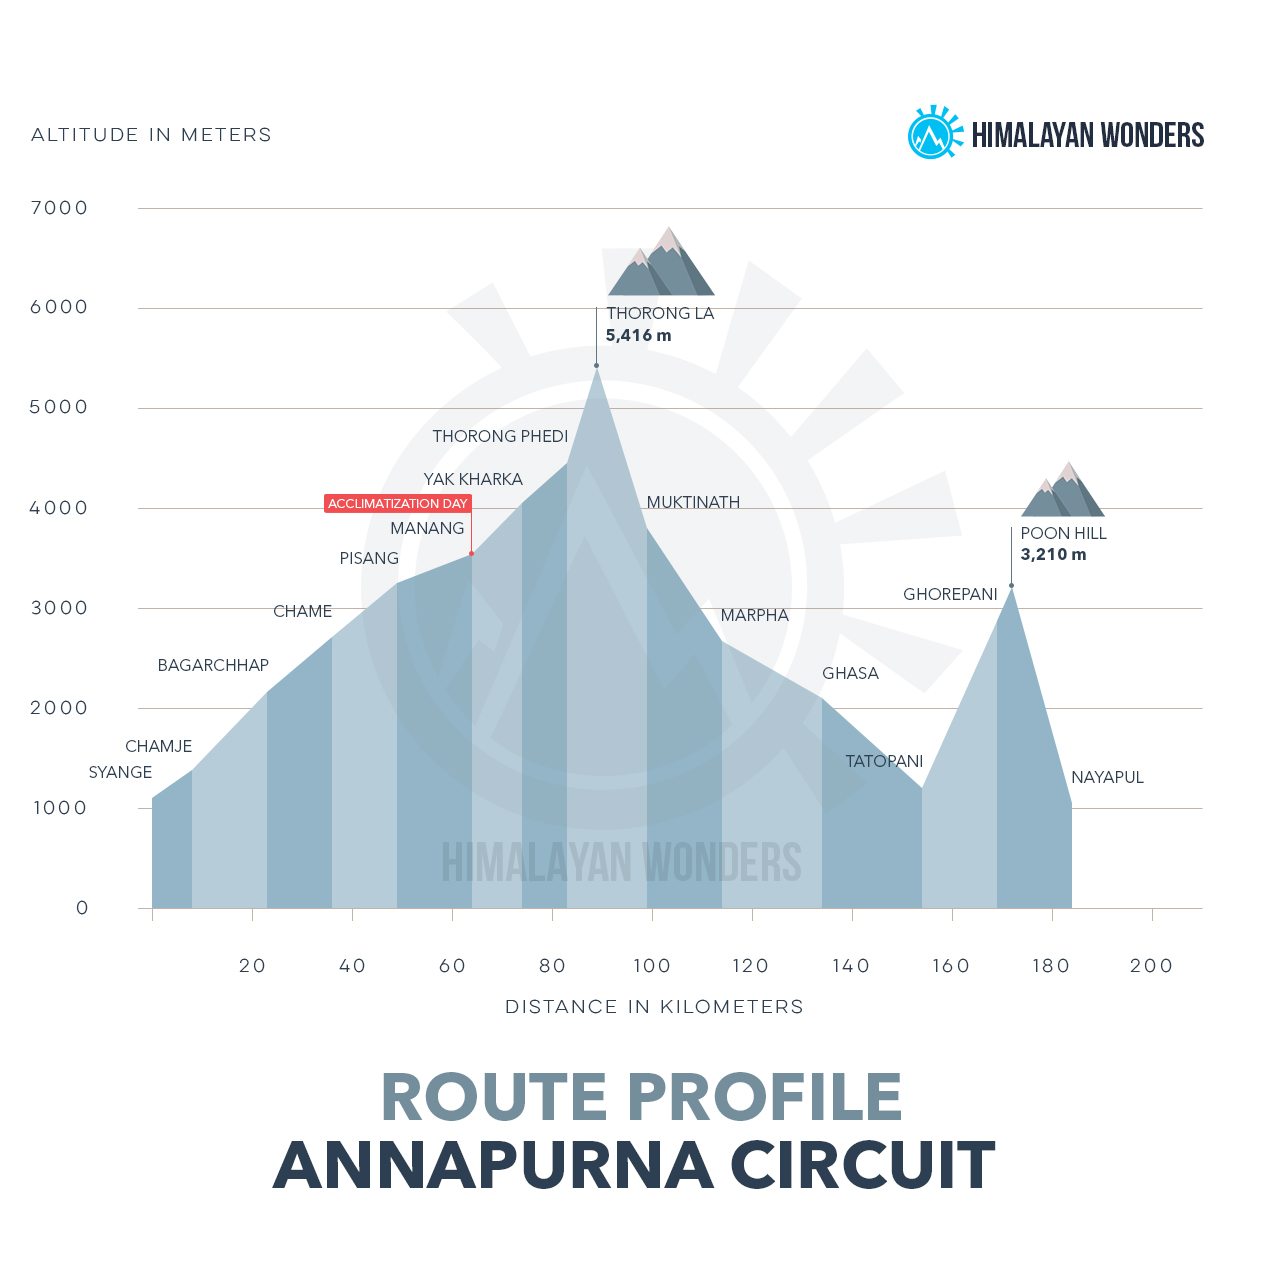 Annapurna Circuit Route Profile